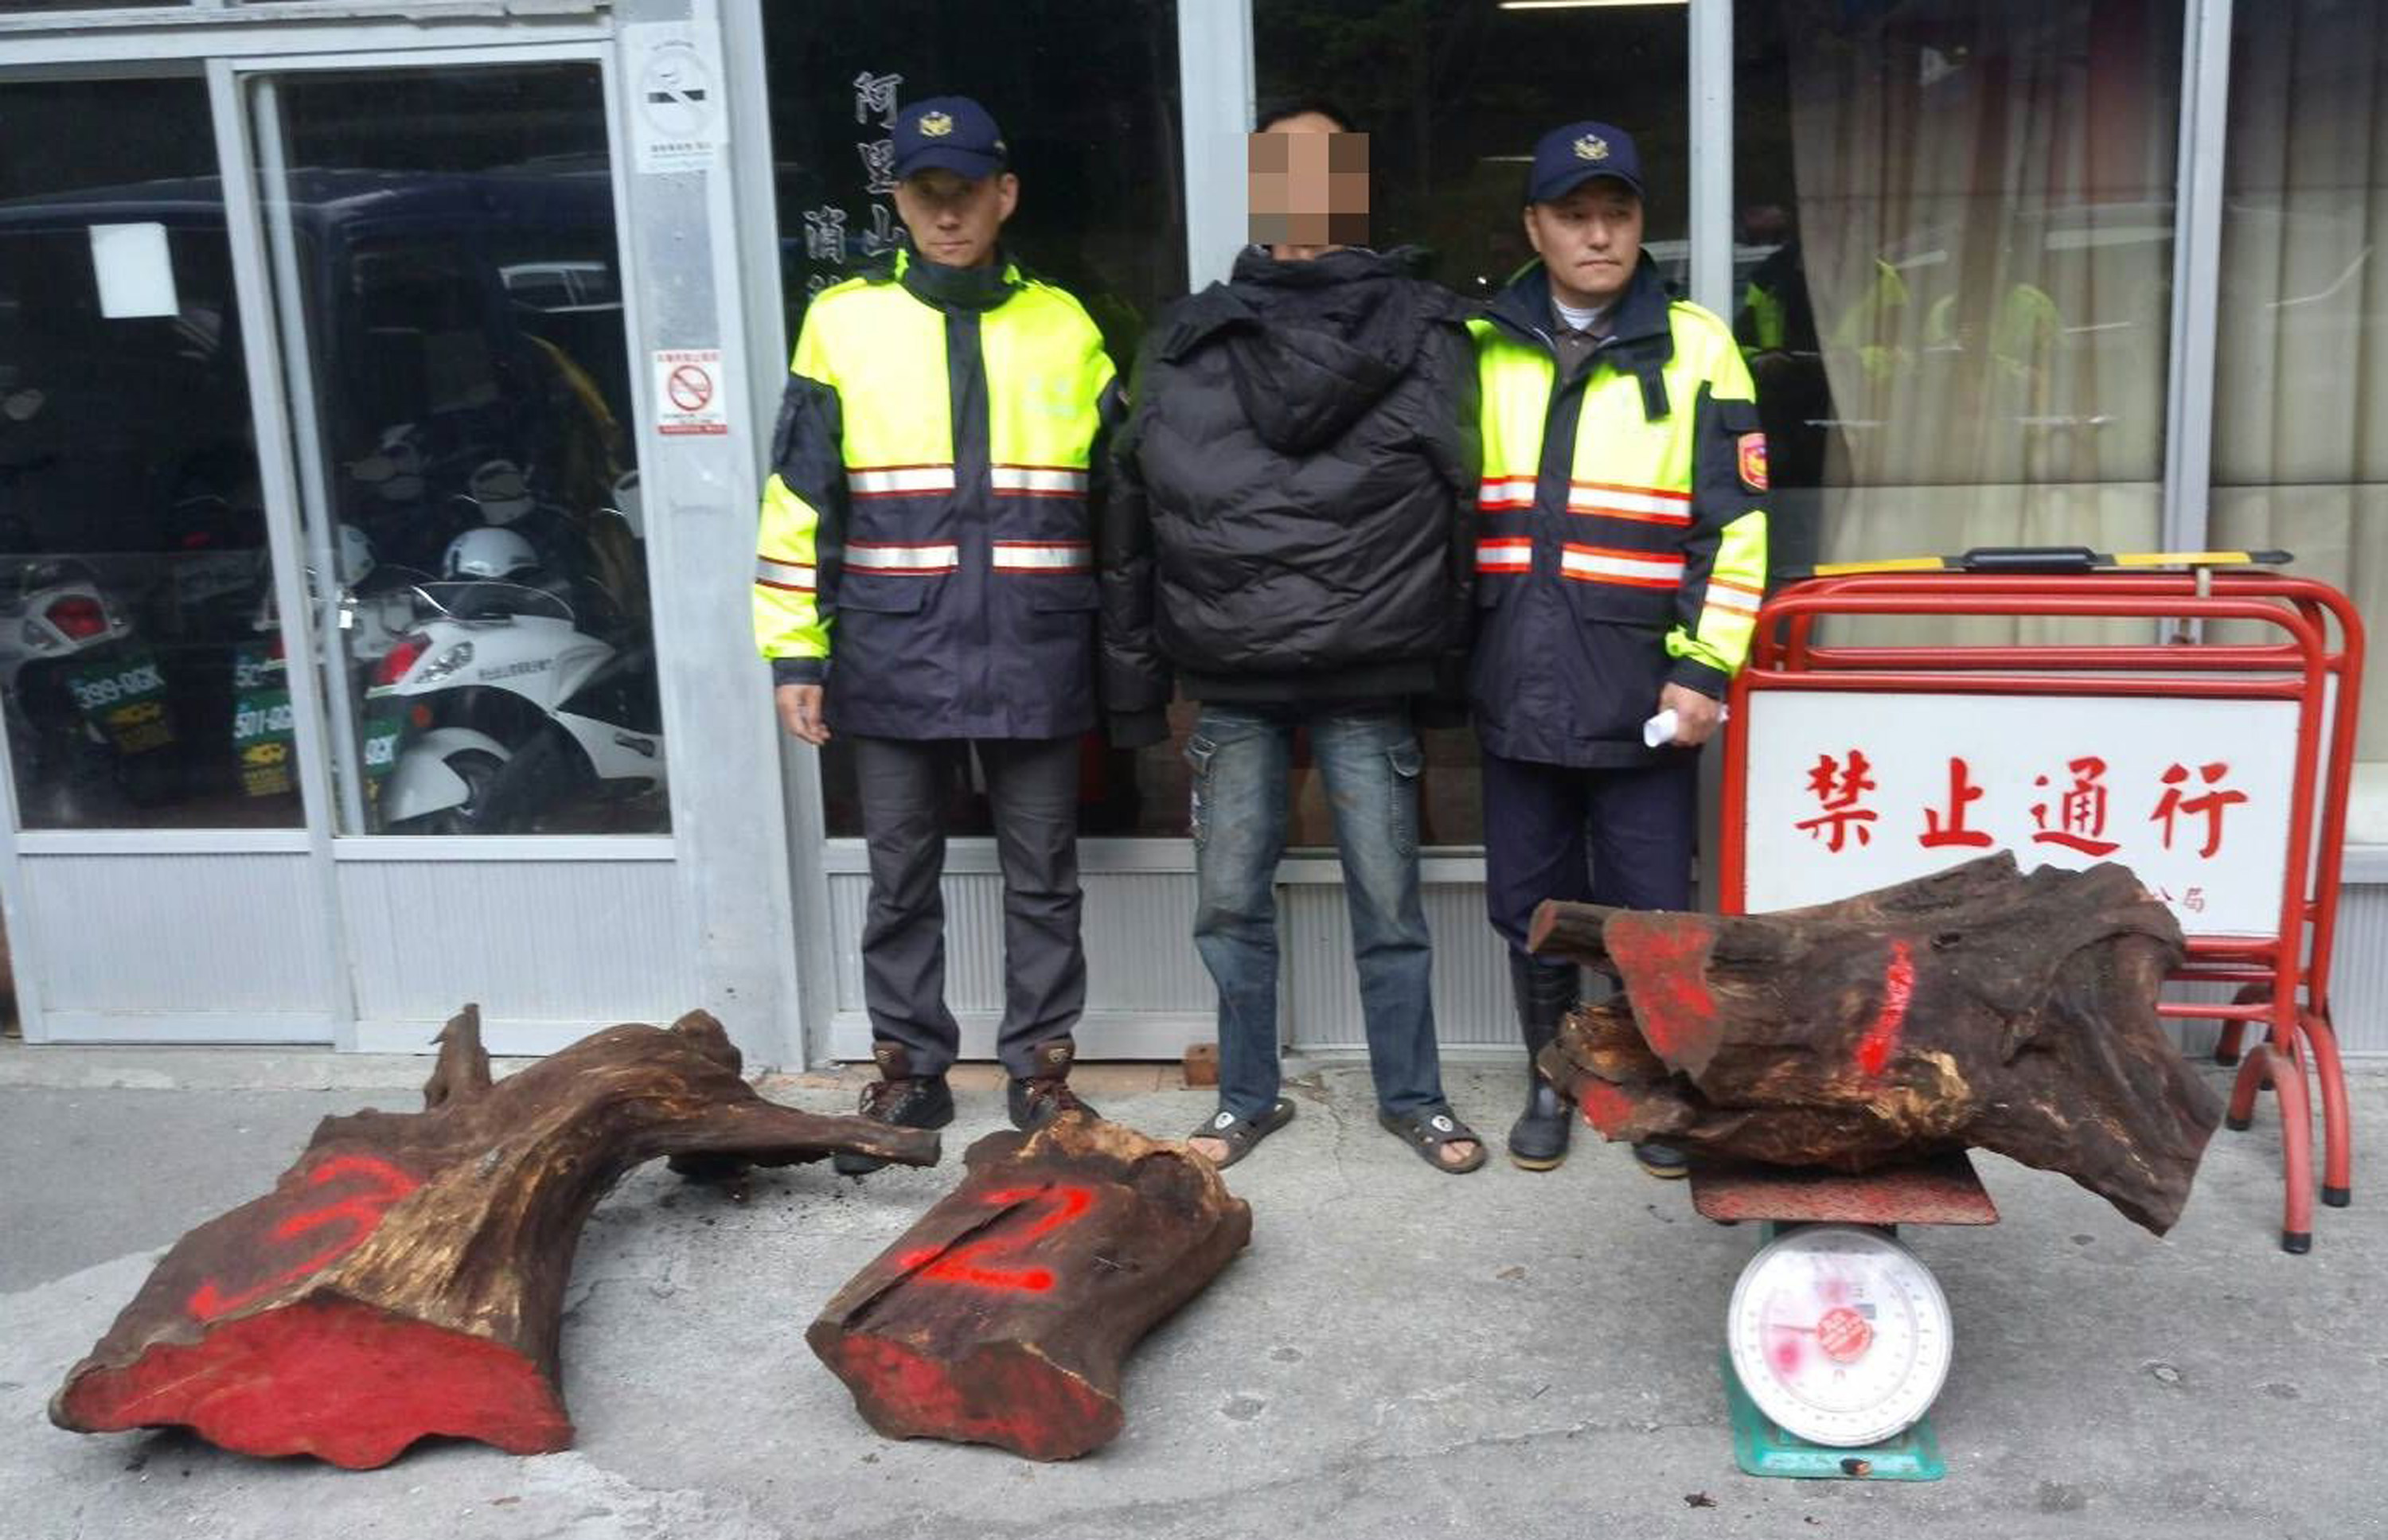 Chiayi County police arrested a man for illegal logging in Alishan (photo courtesy Chiayi County Police)